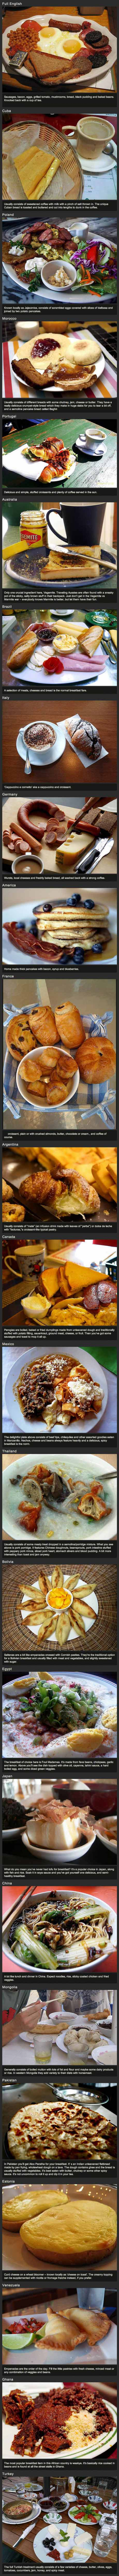 traditional breakfast around the world, compilation